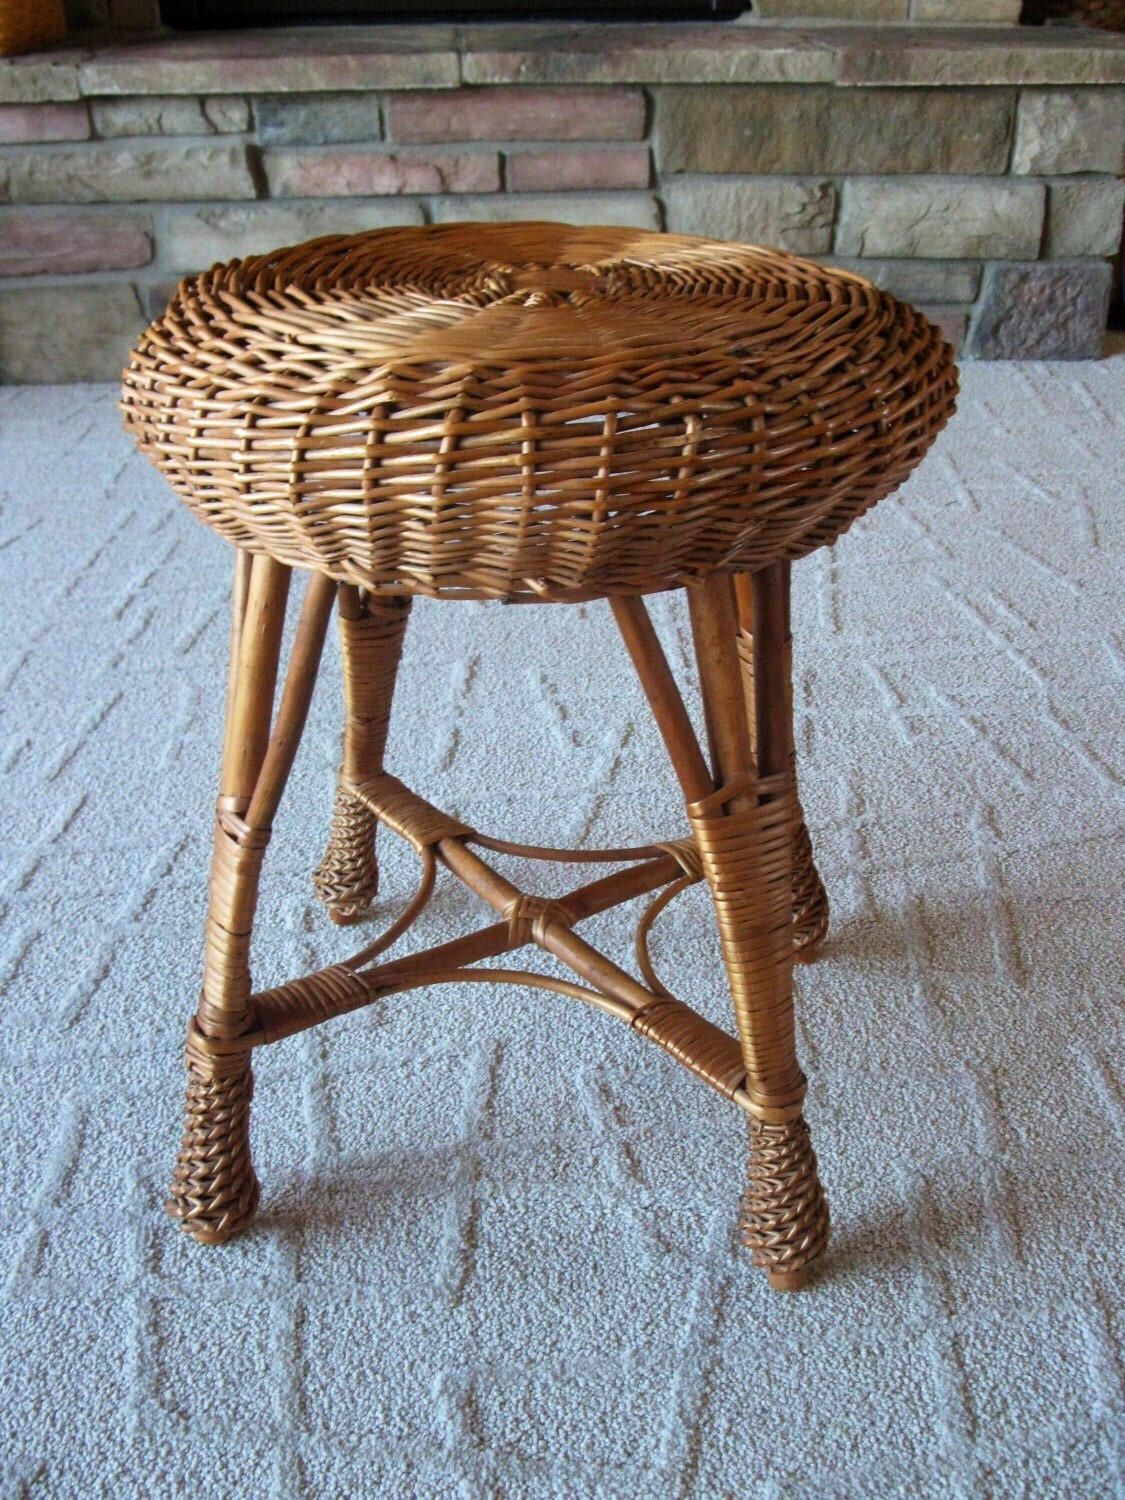 Vintage Wicker Bamboo Stool Plant Stand End Table Rattan